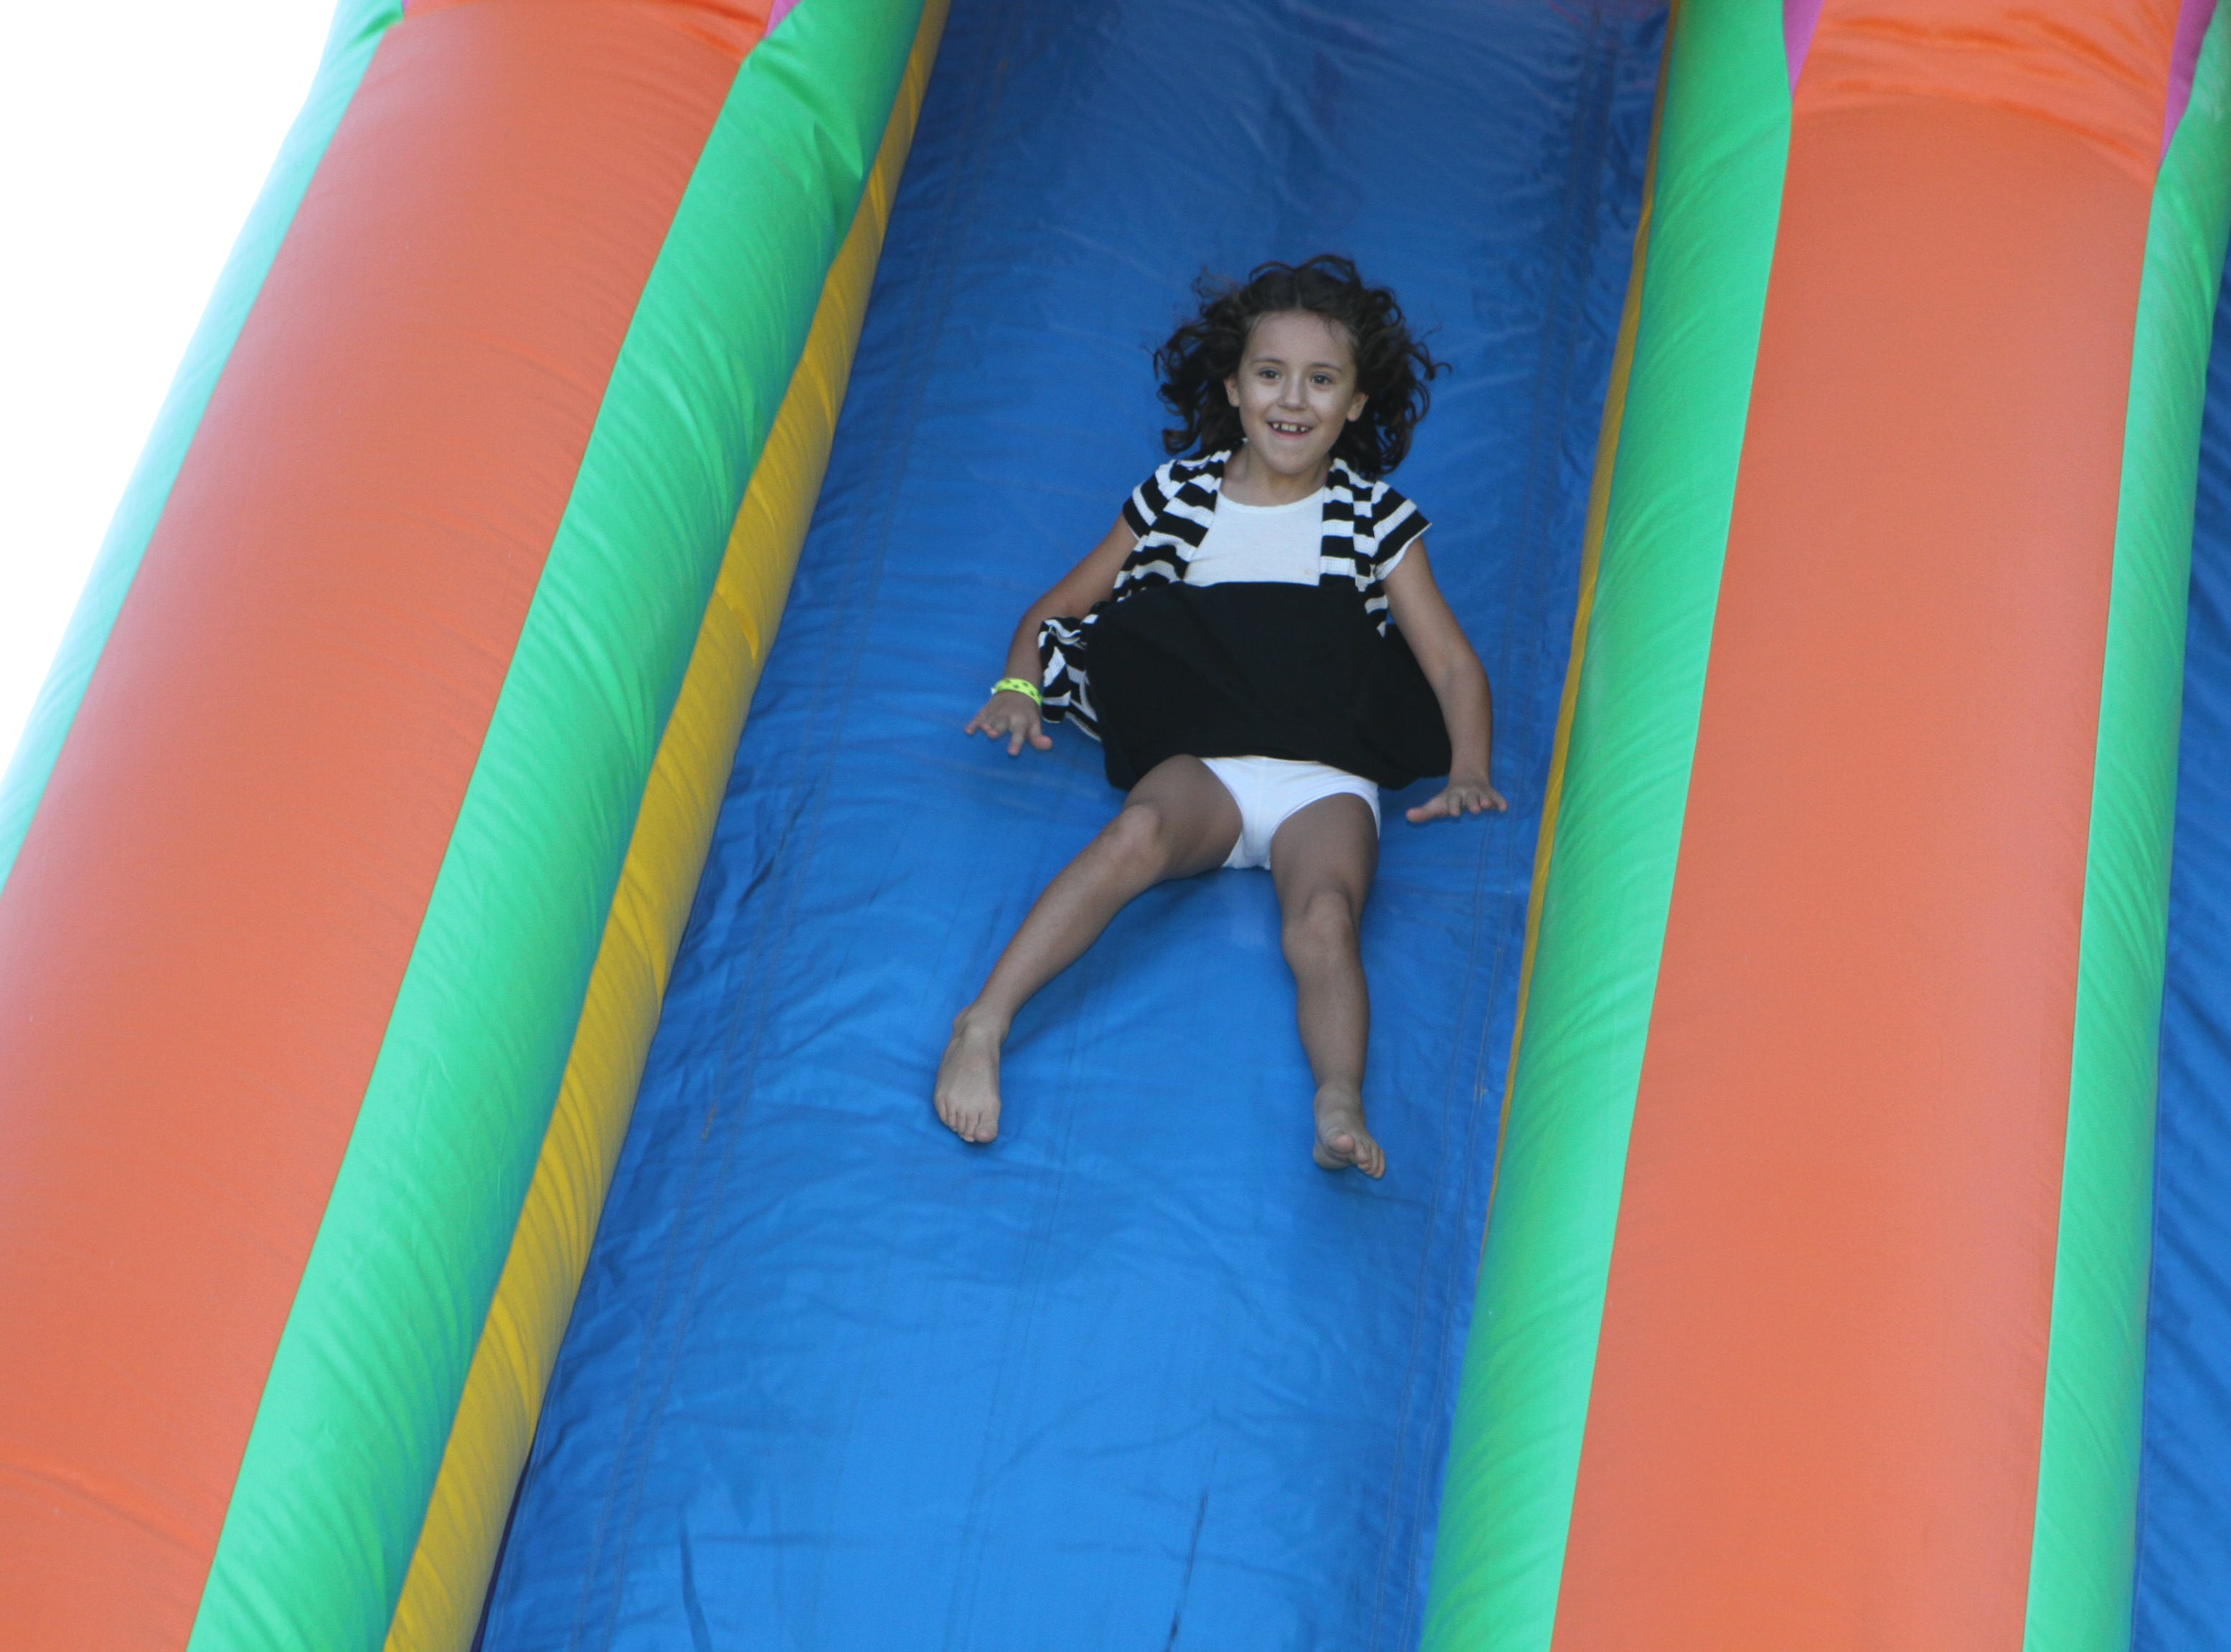 Alyssa Duffy enjoys the inflatables at Wags and Wings, a family fun and Oktoberfest event to benefit the Humane Society of Clarksville-Montgomery County, Saturday, Sept. 29, 2018.